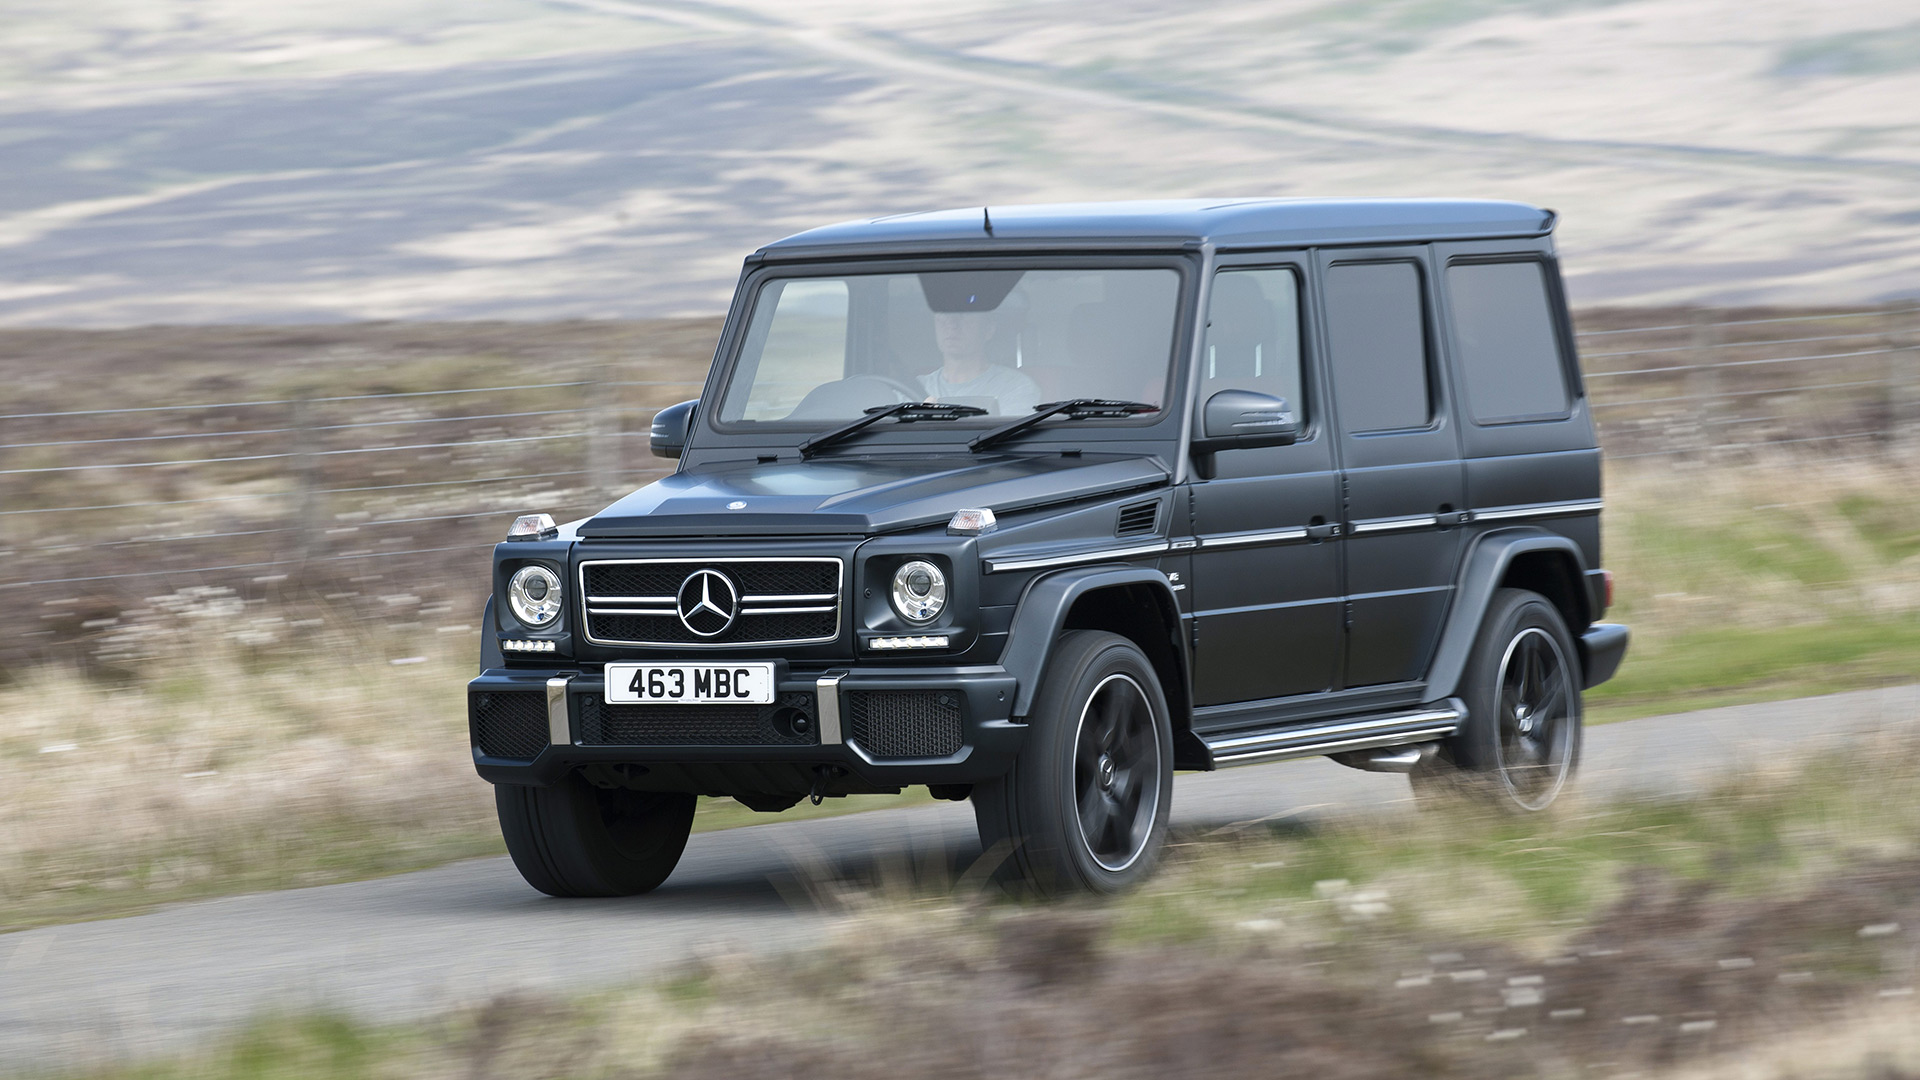 Mercedes Benz G Class 2015 G 63 AMG Price Mileage Reviews